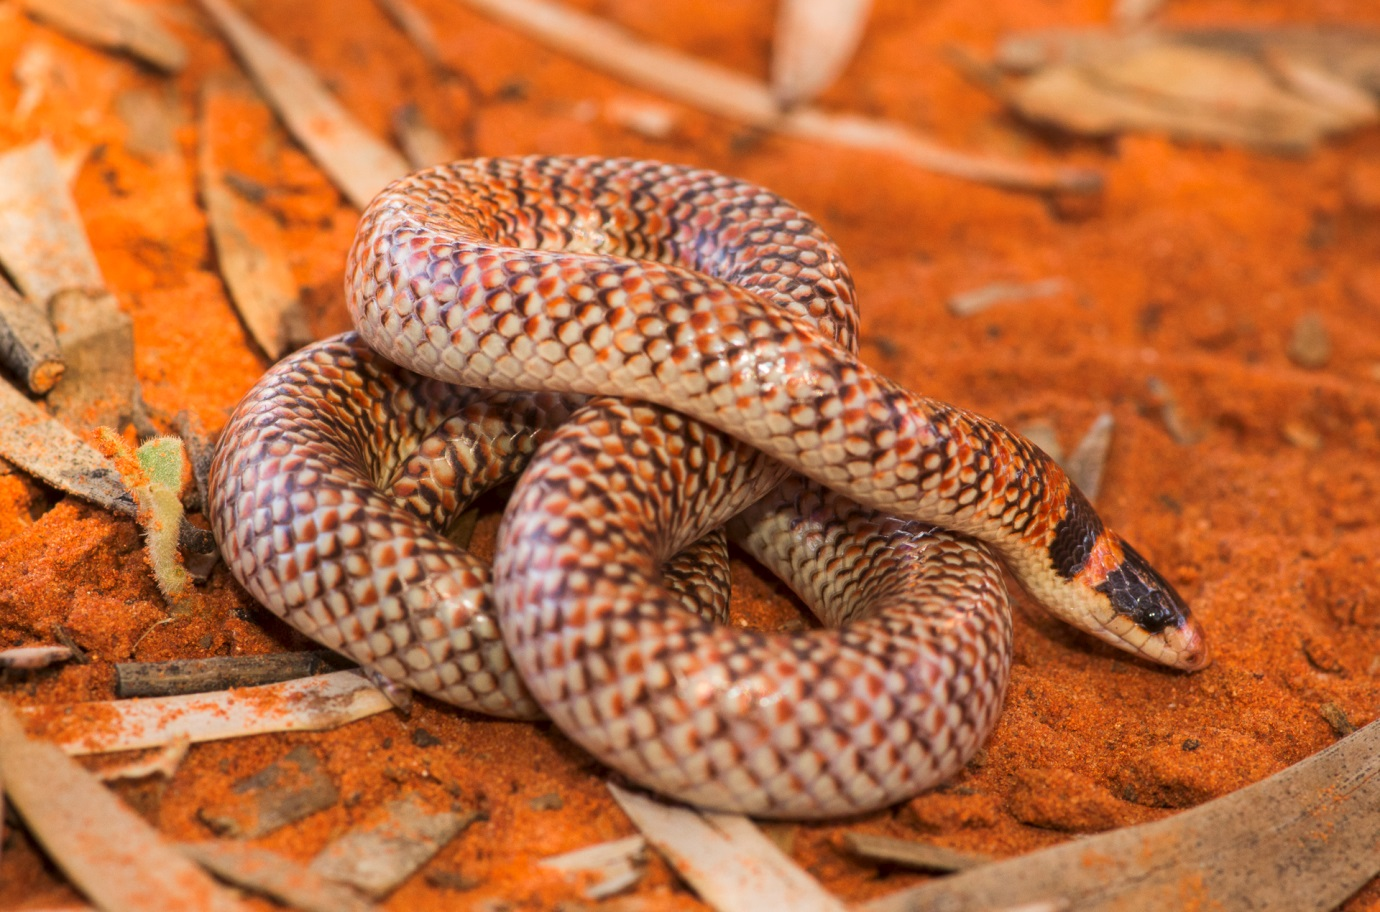 <i>Brachyurophis fasciolatus</I>, Narrow-Banded Shovel-Nosed Snake.  Photo: David Nelson